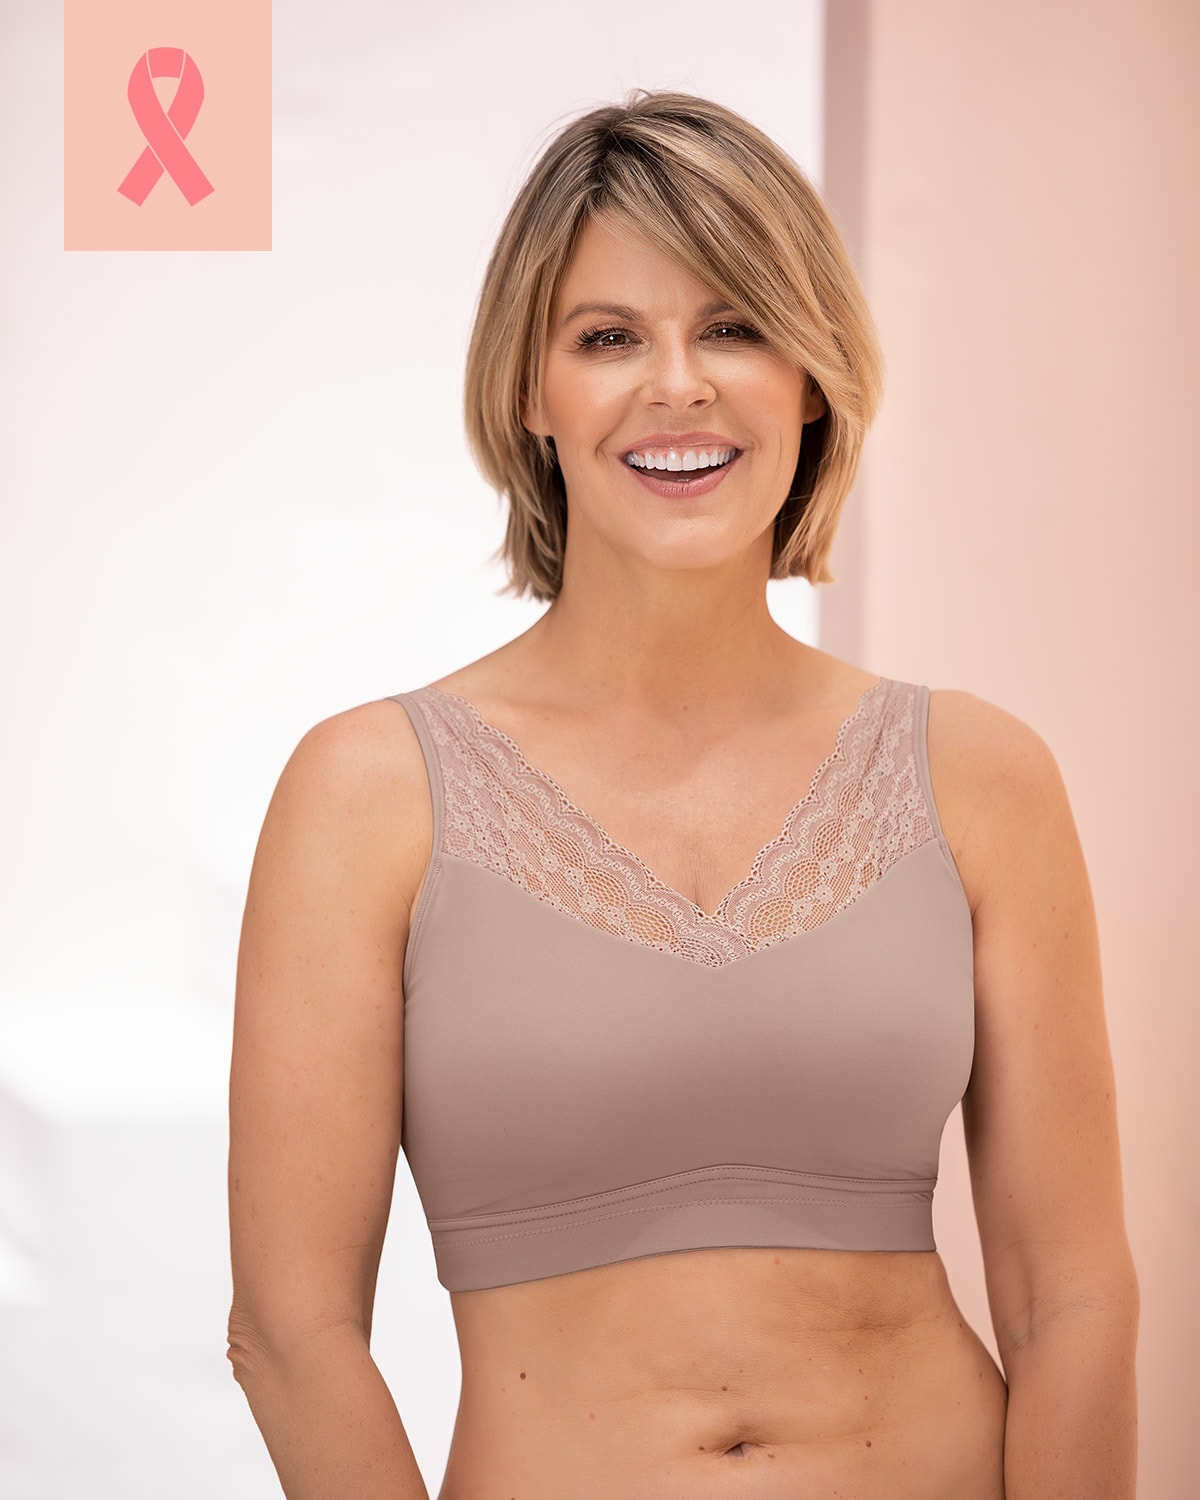 Pocketed Mastectomy Bra - Wireless, Lace, Removable Padding